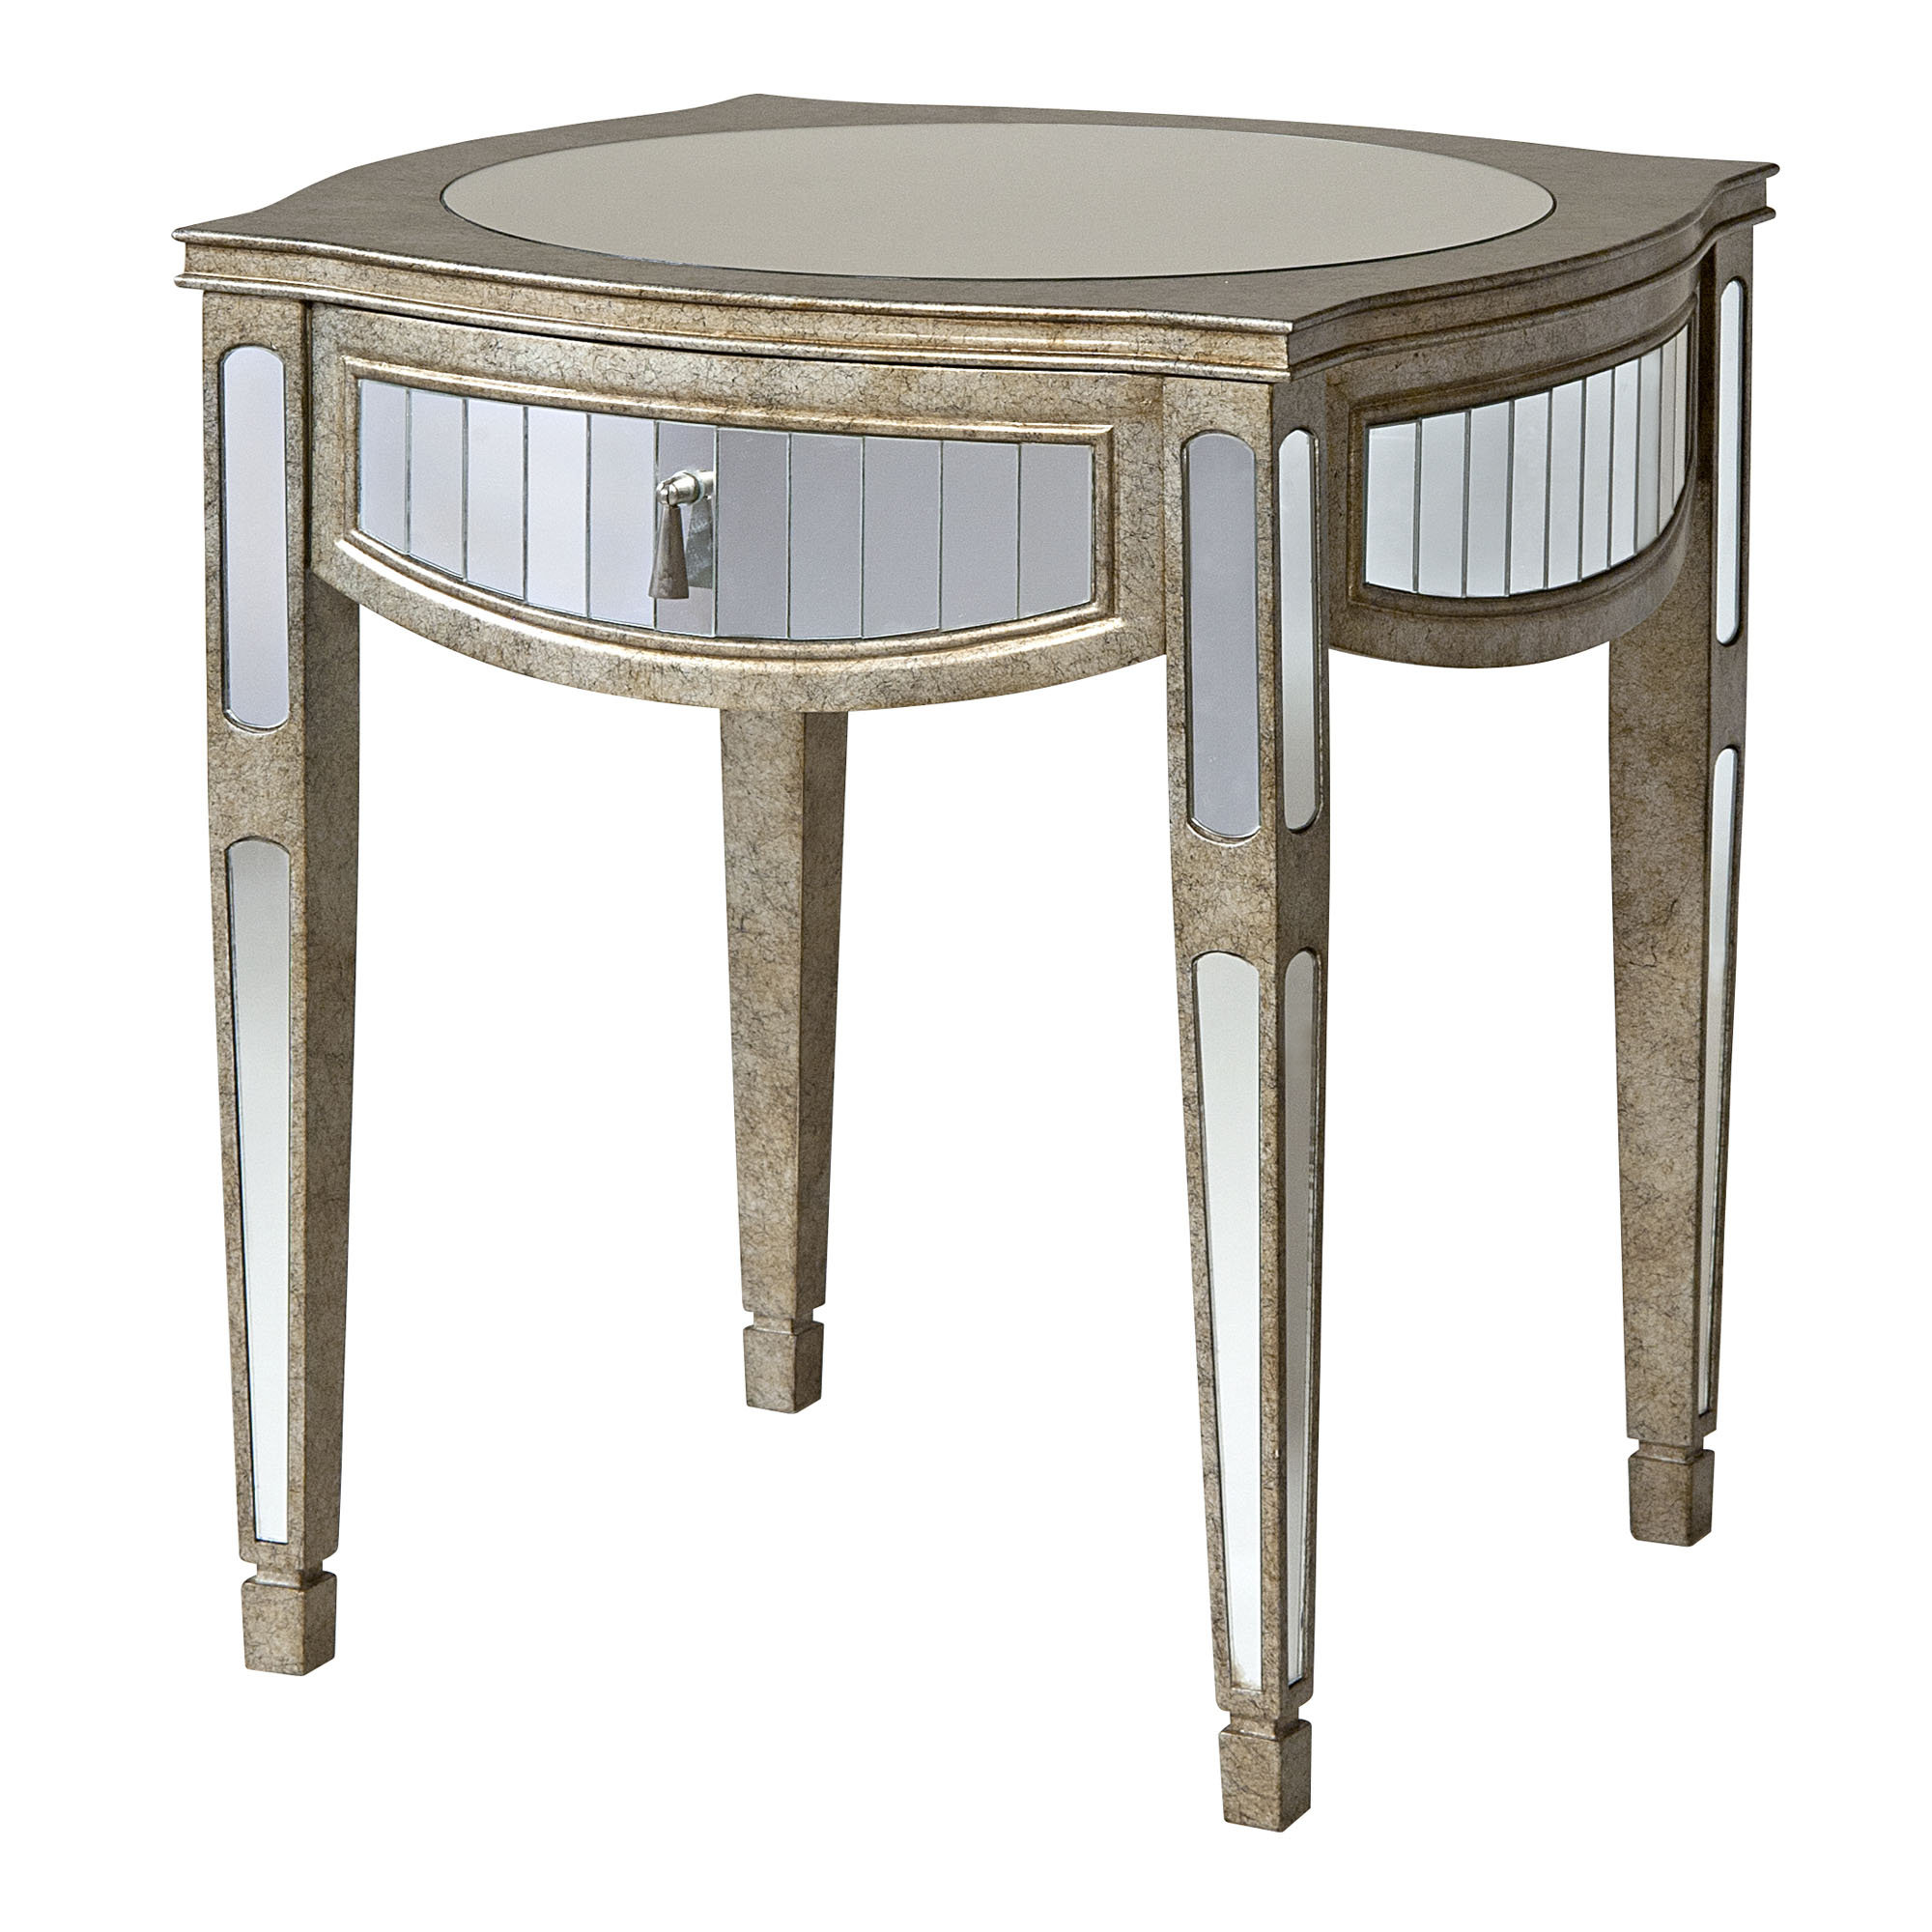 furniture interesting target mirrored for home console table with single drawers charming ideas simply shabby chic bedding pier hayworth wall mirror grey nightstands accent small